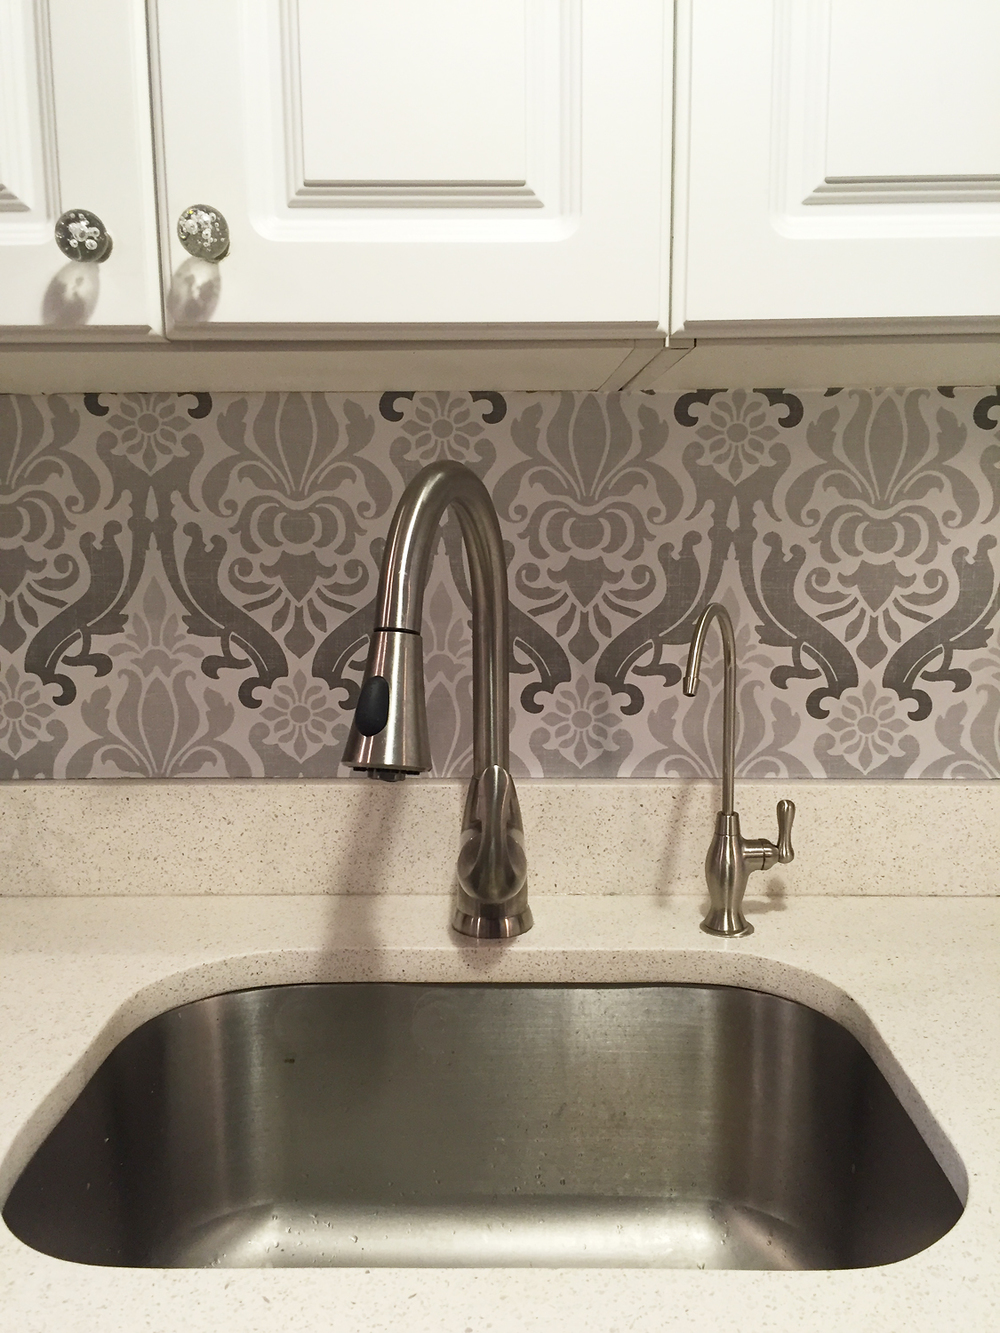 After - I covered the tile with sticky removable wallpaper that can be peeled off when the renter moves. I also changed the silver cabinet knobs with inexpensive glass knobs.